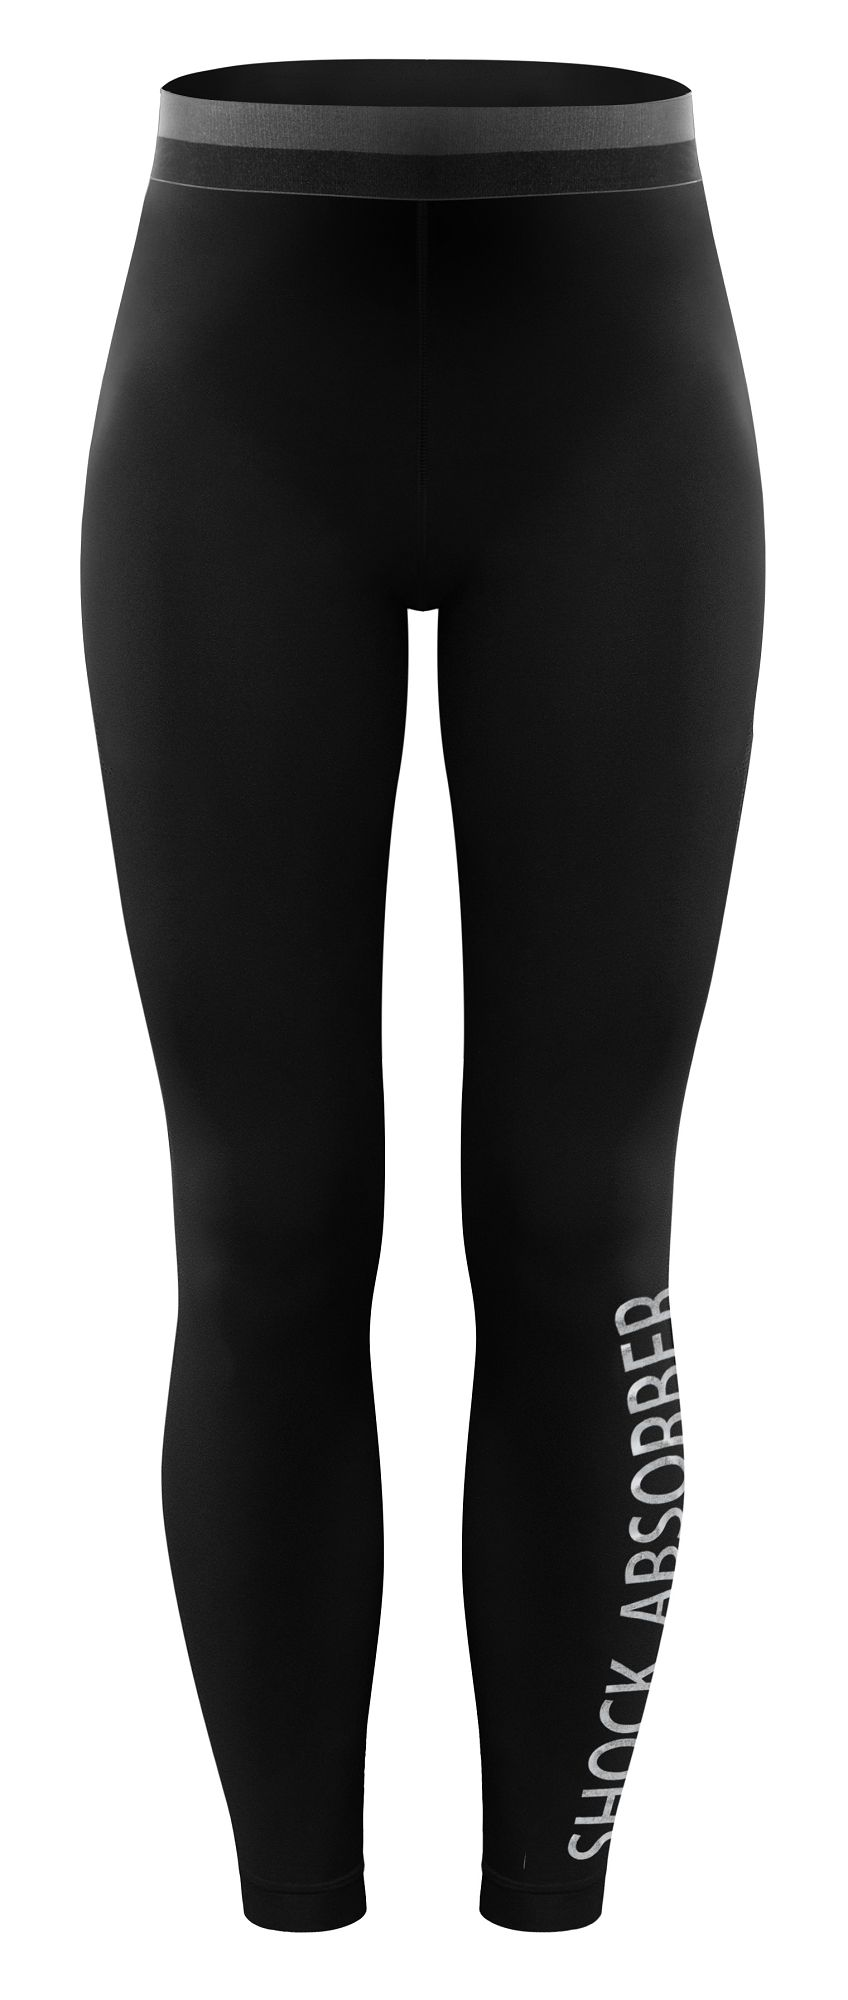 Active Wear leggings in black Shock Absorber, , DIM